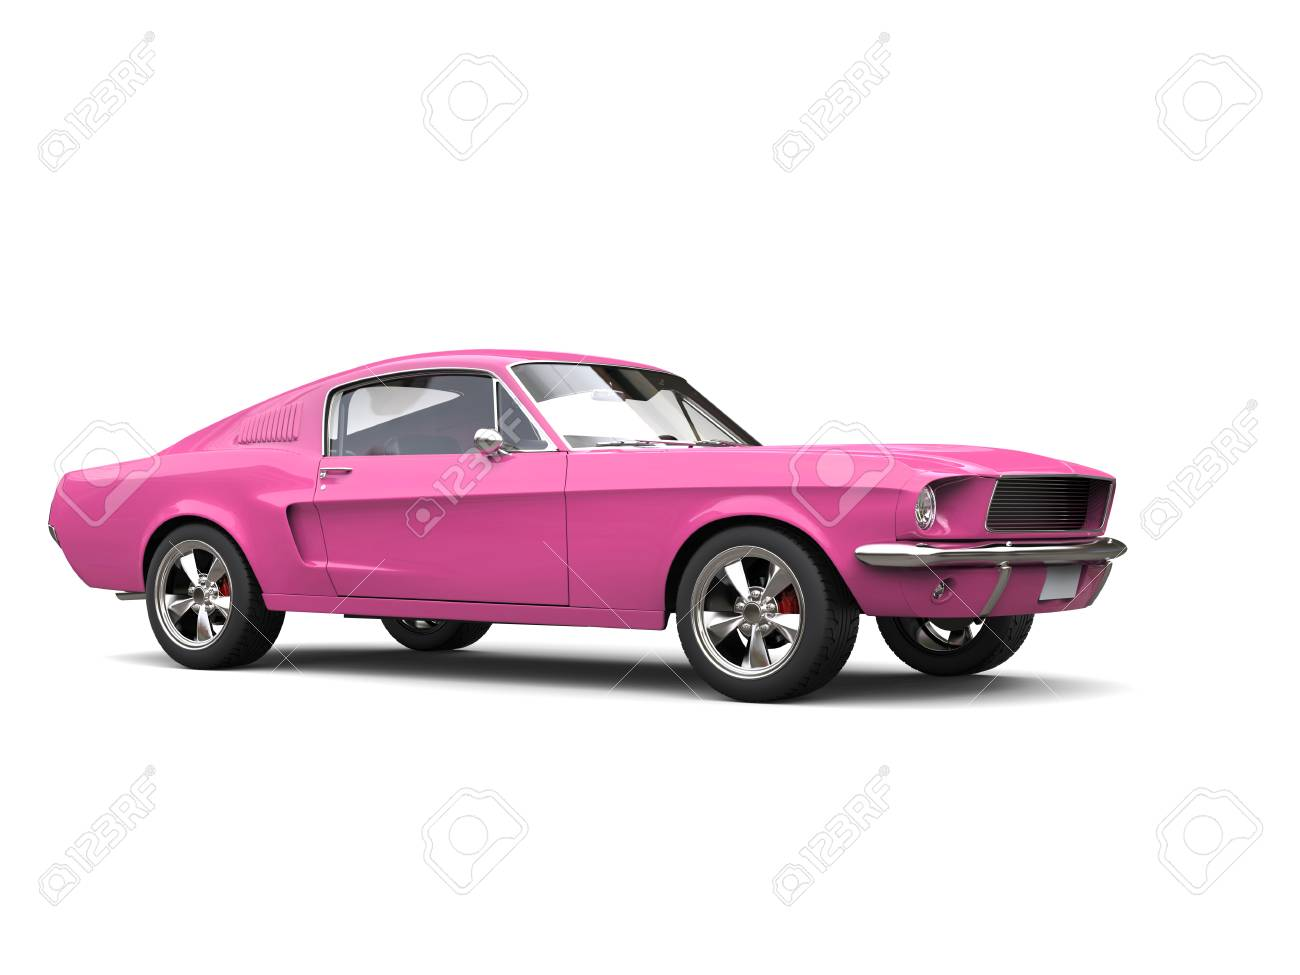 Beautiful Warm Pink Vintage American Muscle Car Stock Photo, Picture ...